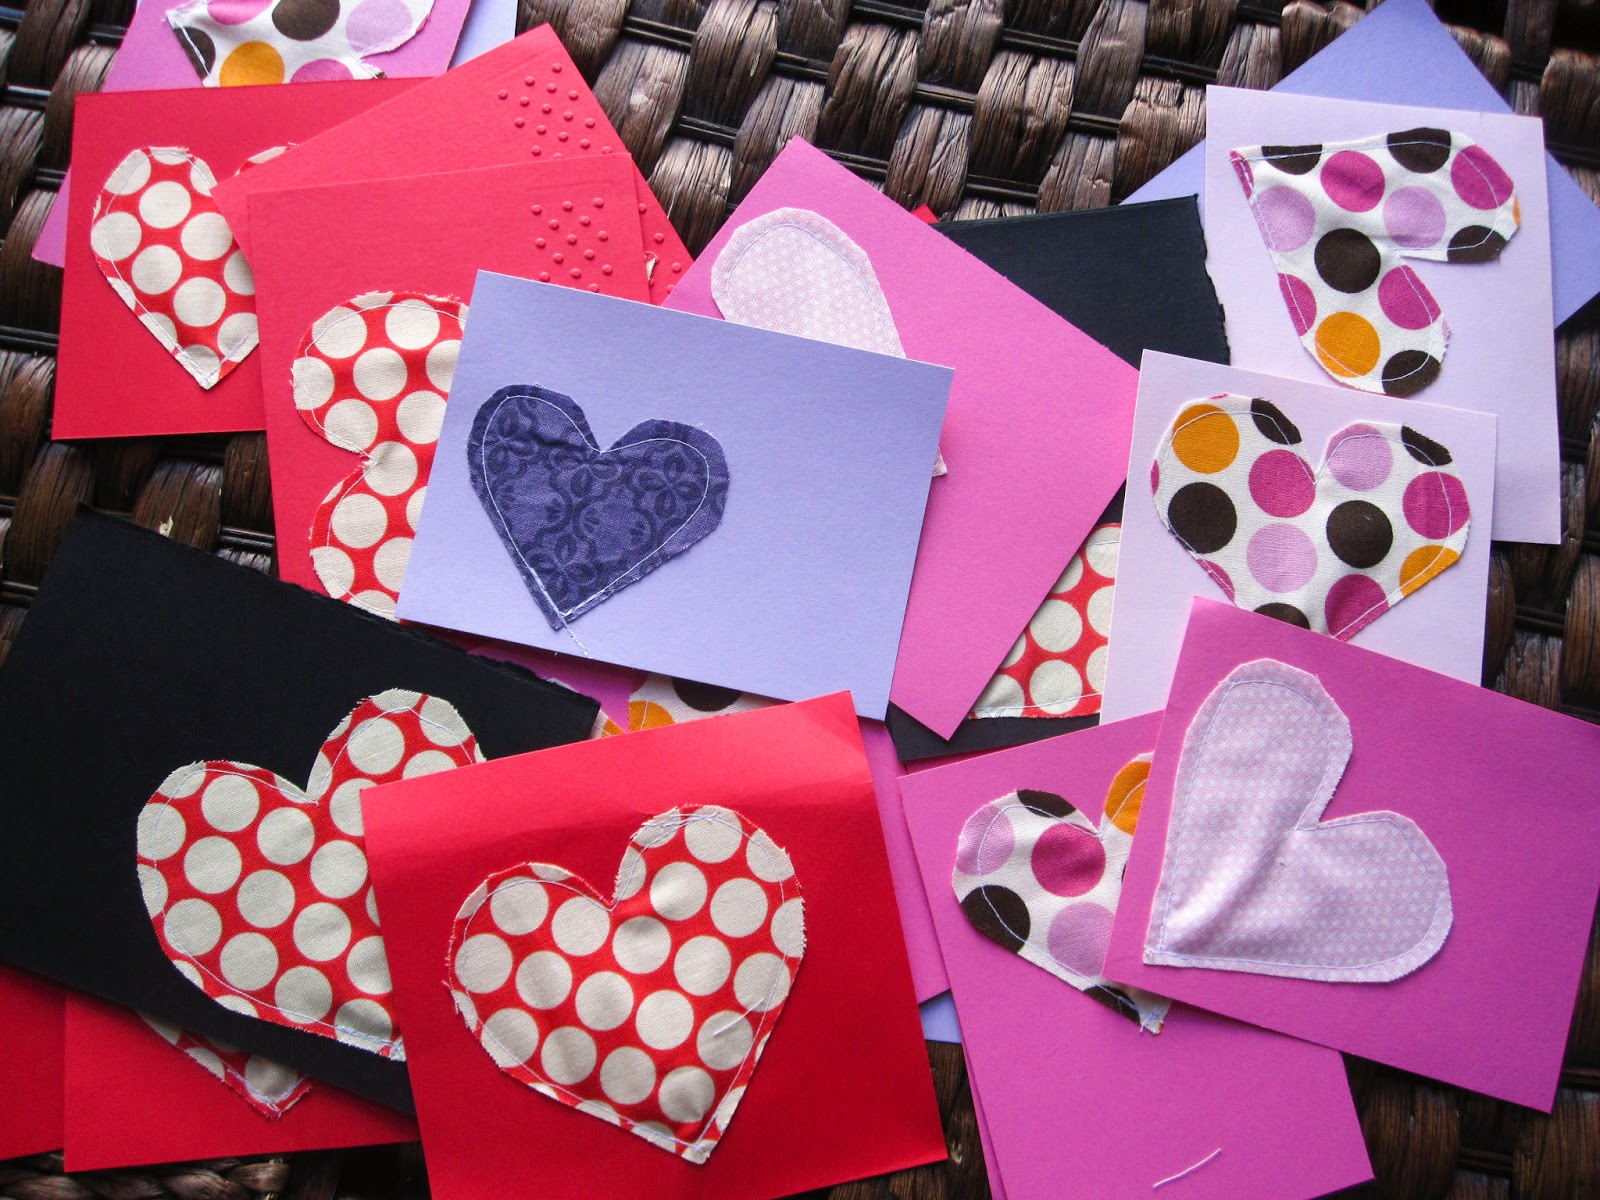 The Homemade Calling Fabric Heart Cards